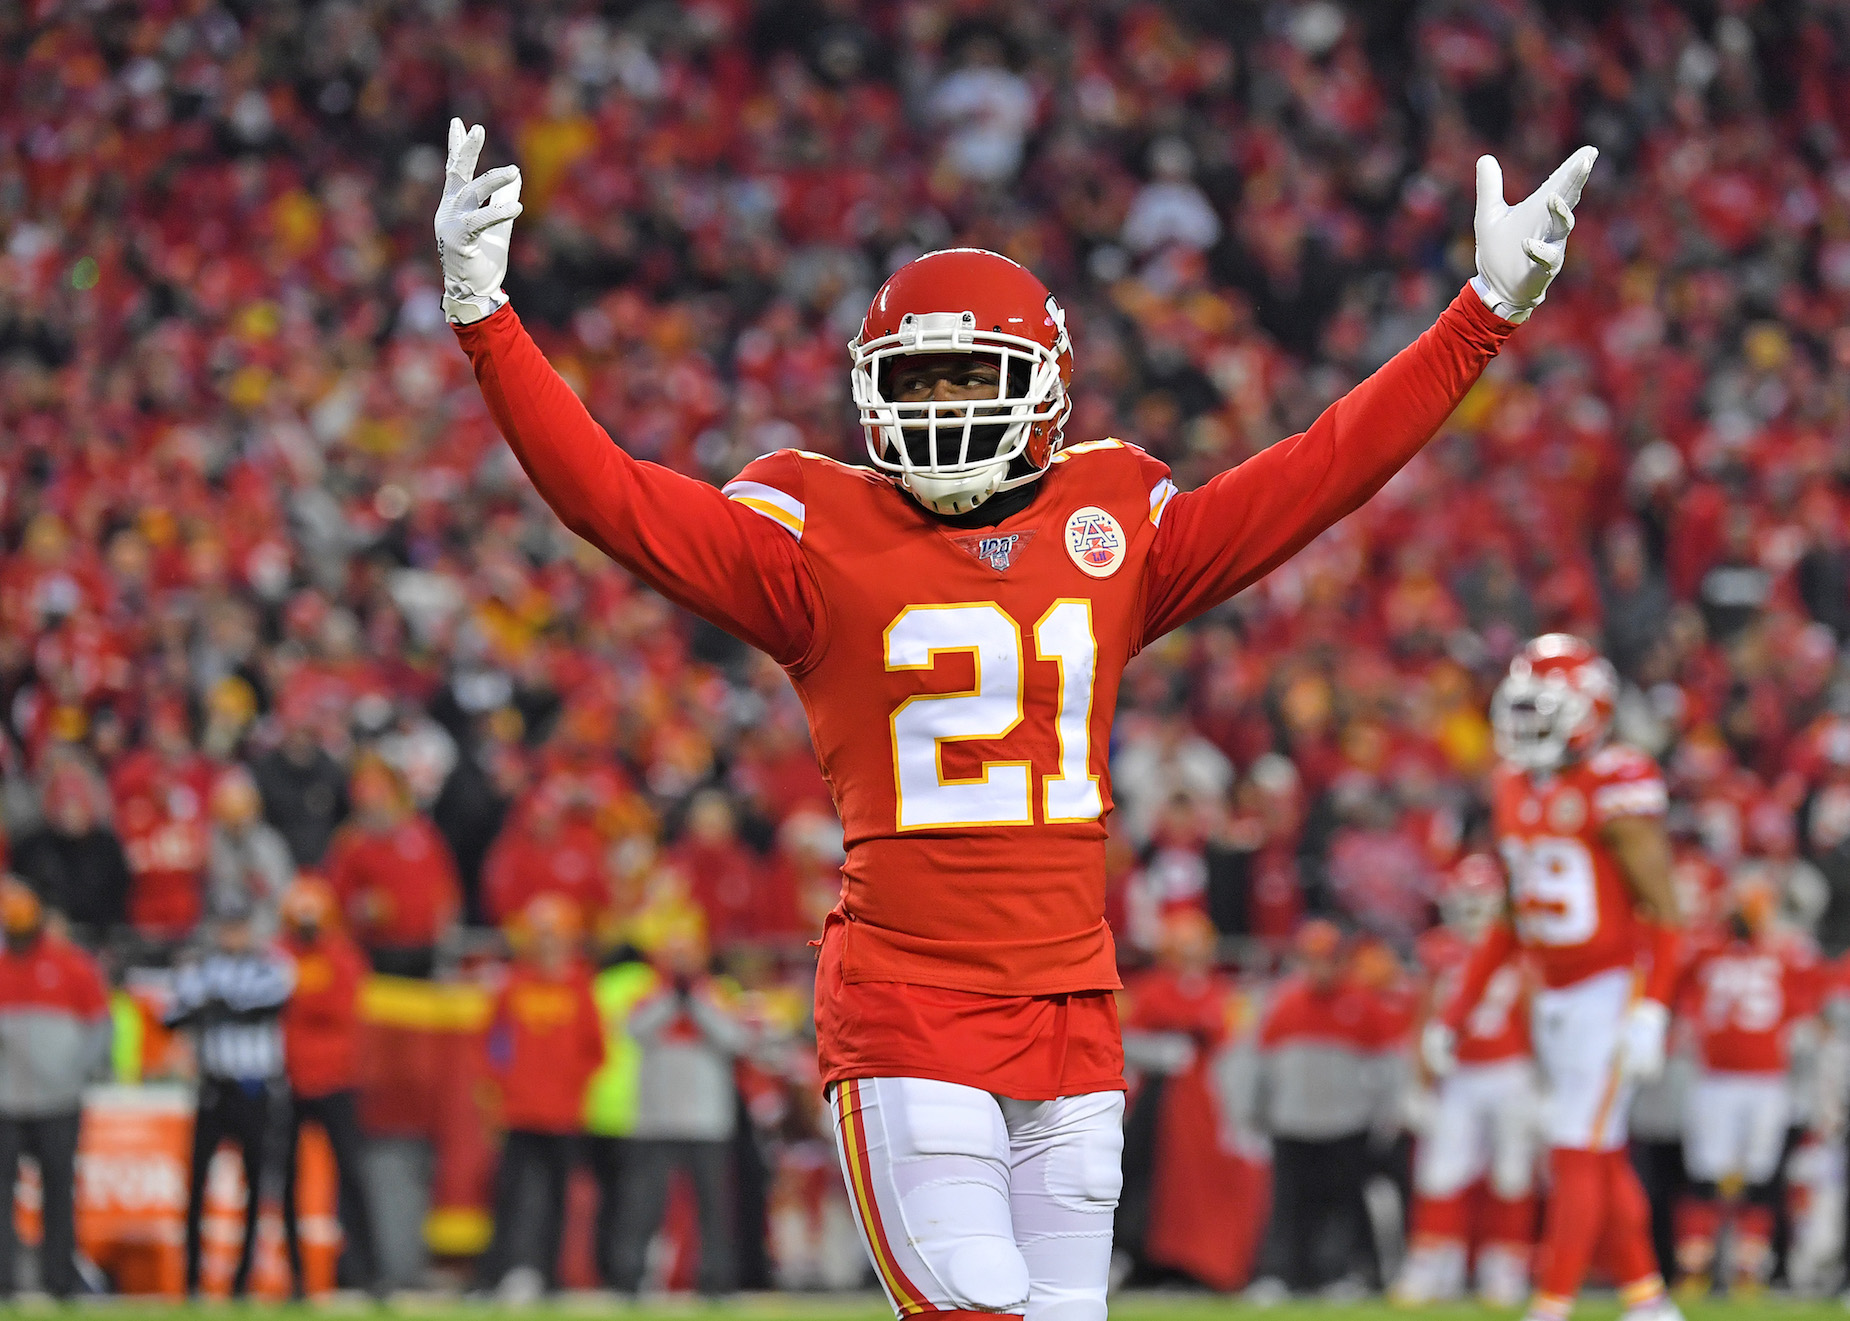 While Patrick Mahomes and the Kansas City Chiefs offense gets all the headlines, the club wil gain an invaluable defensive reinforcement in Week 5.